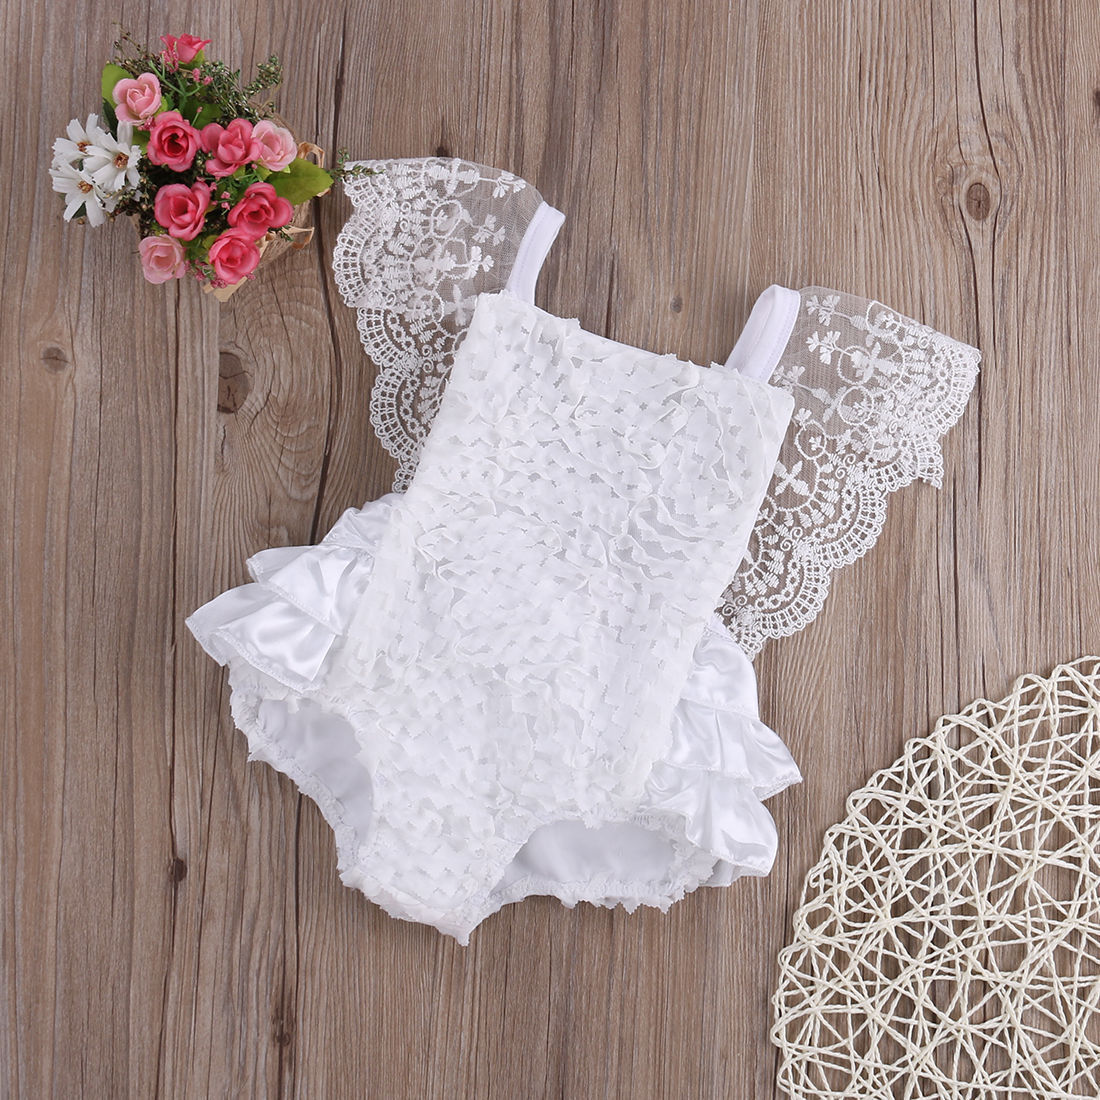 Baby Girl Clothes Lace Floral Bodysuit Sunsuit Outfits Lovely White Lace Baby Bodysuits 0-18 Months for Birthday Party Bodysuits black stitching floral lace self tie front long sleeves bodysuit